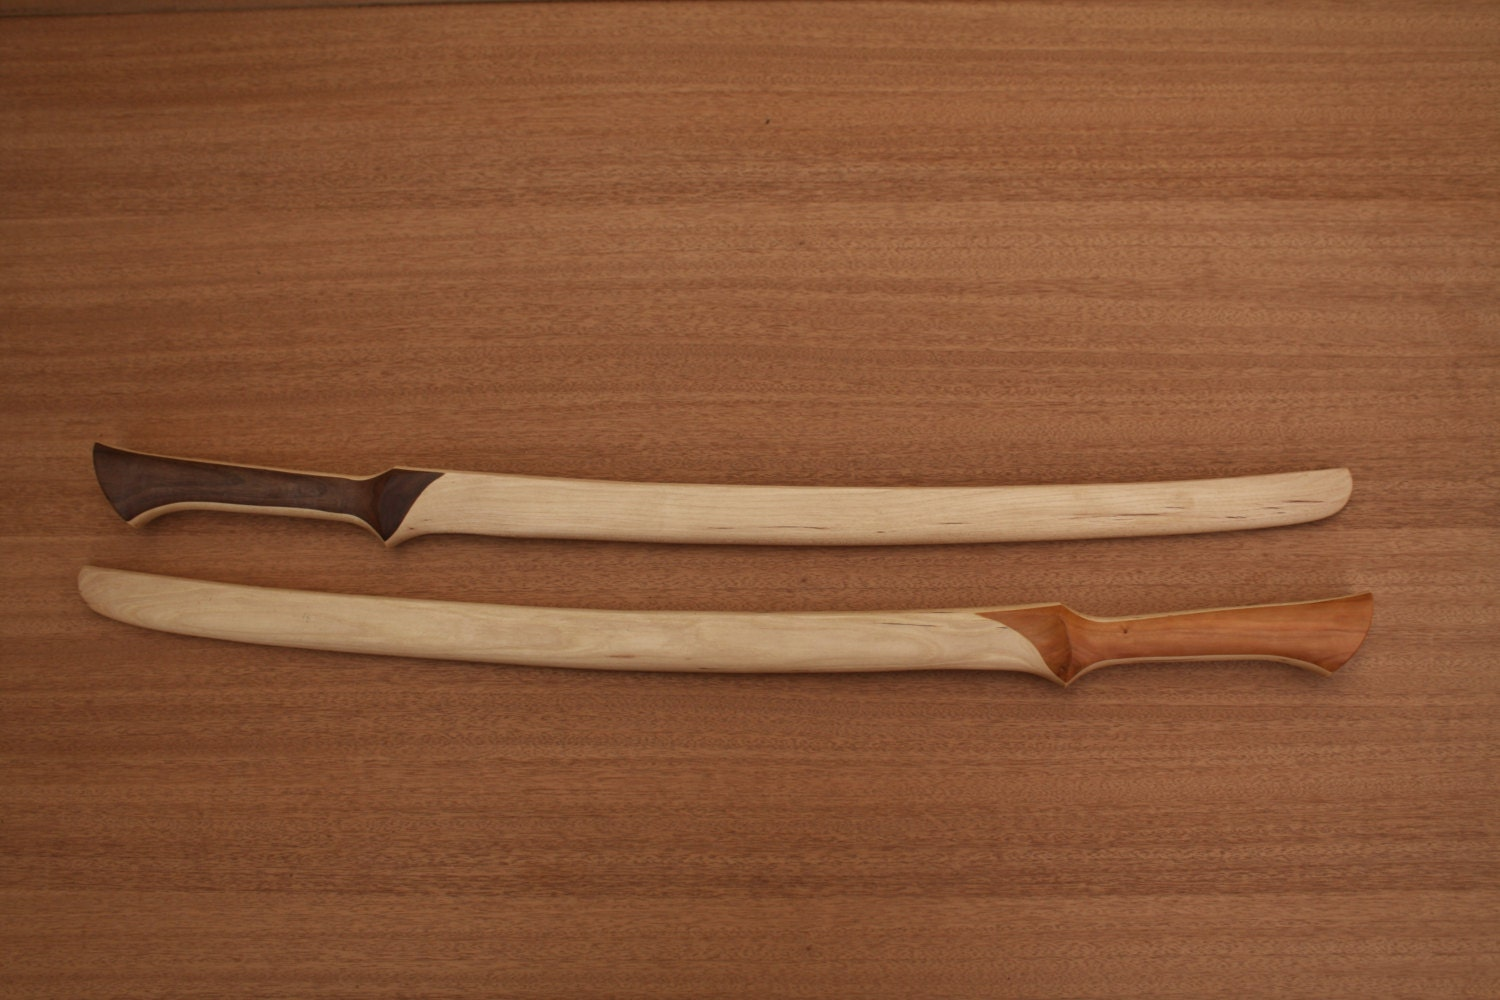 Elven Fighter Sword-Straight Grip- Handcrafted from Solid American Hickory